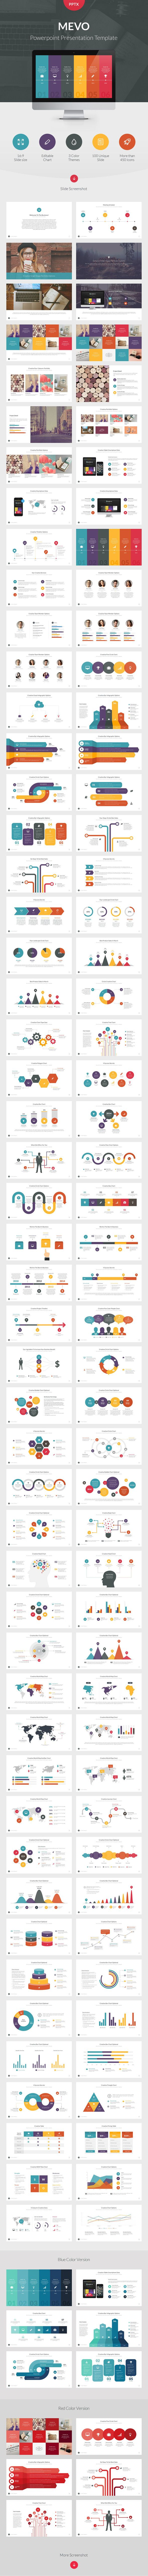 Mevo Powerpoint Presentation Template (Powerpoint Templates) Presentation